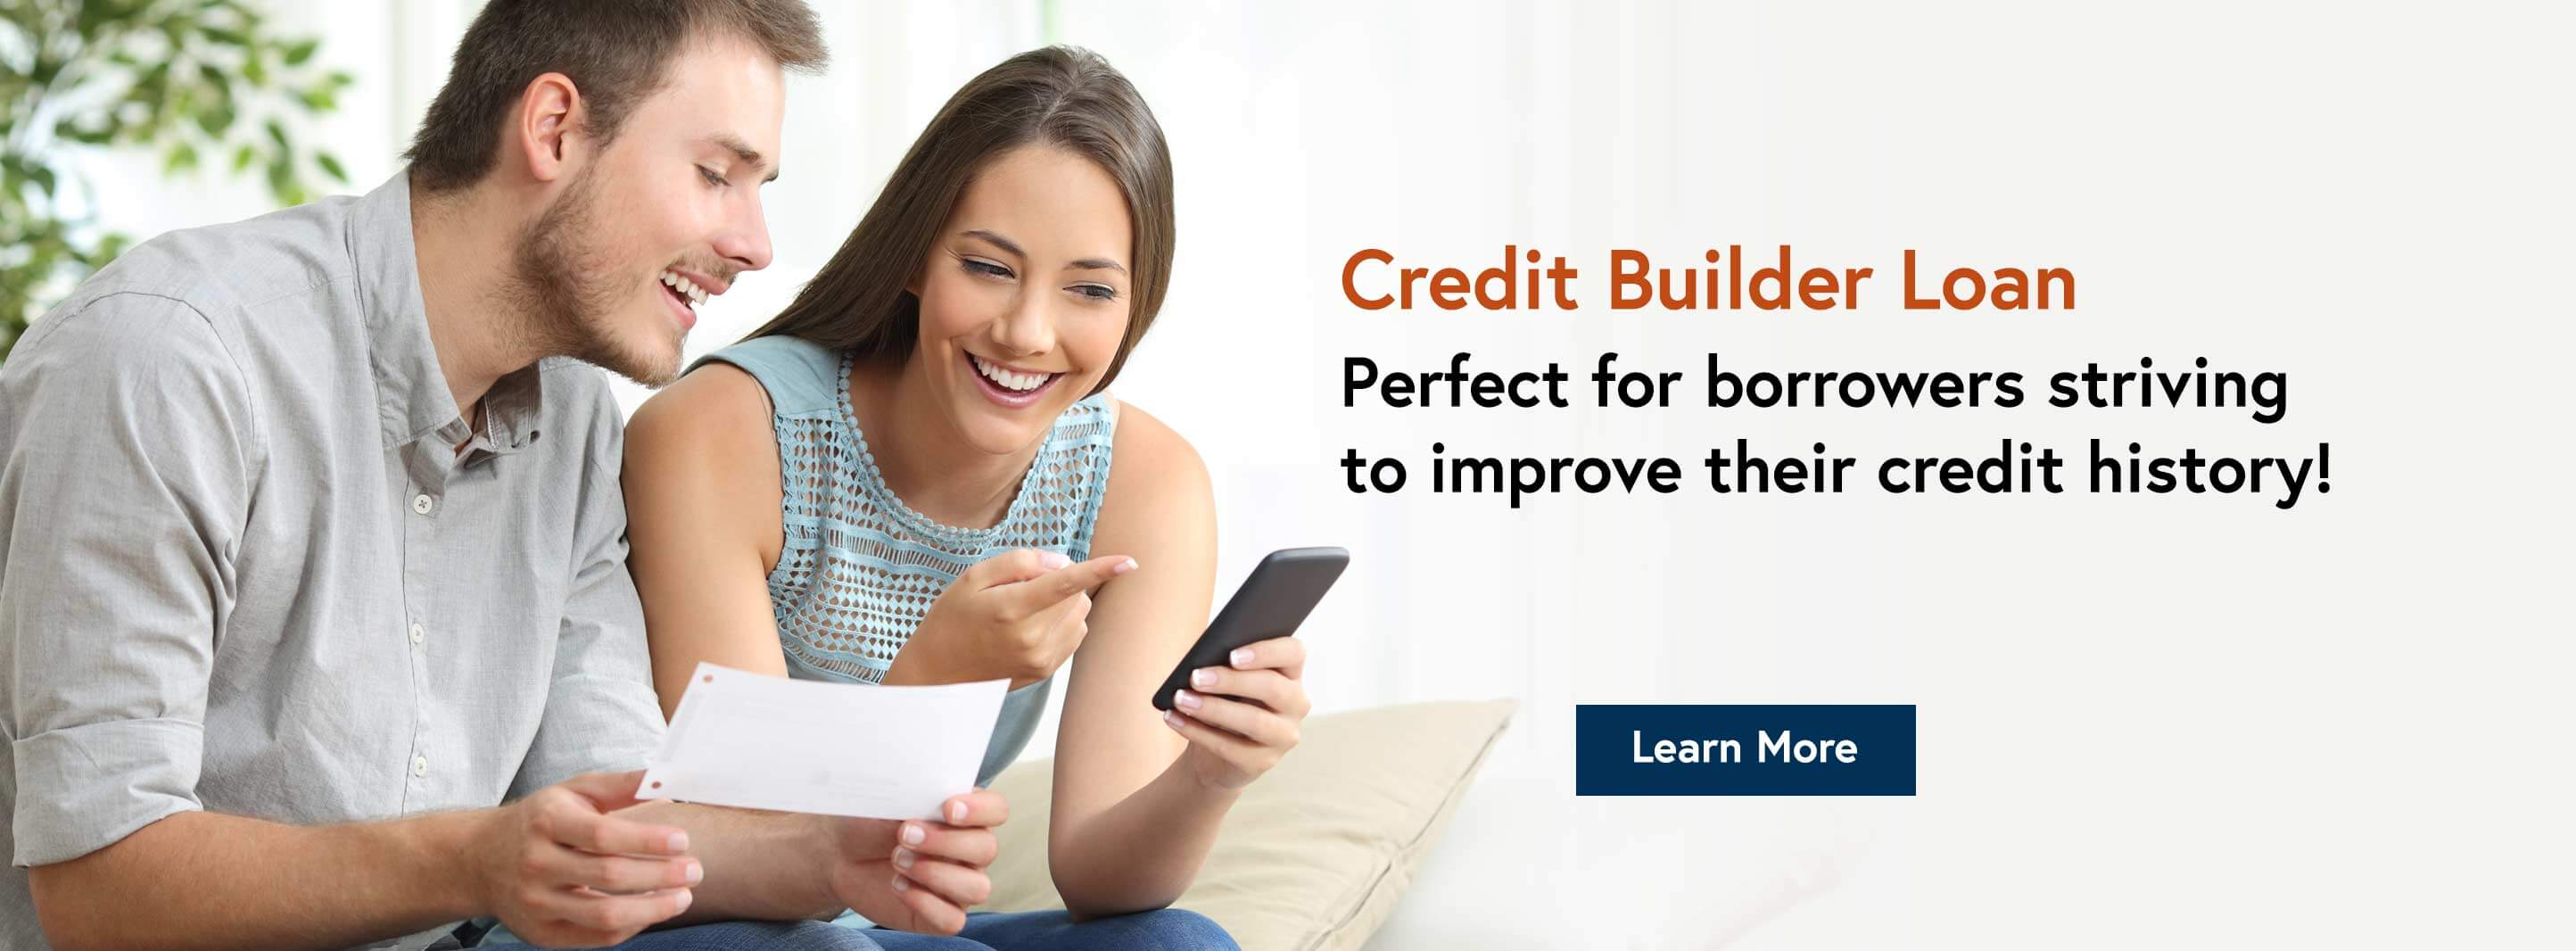 Credit Builder Loan. Perfect for borrowers striving to improve their credit history! Learn More.